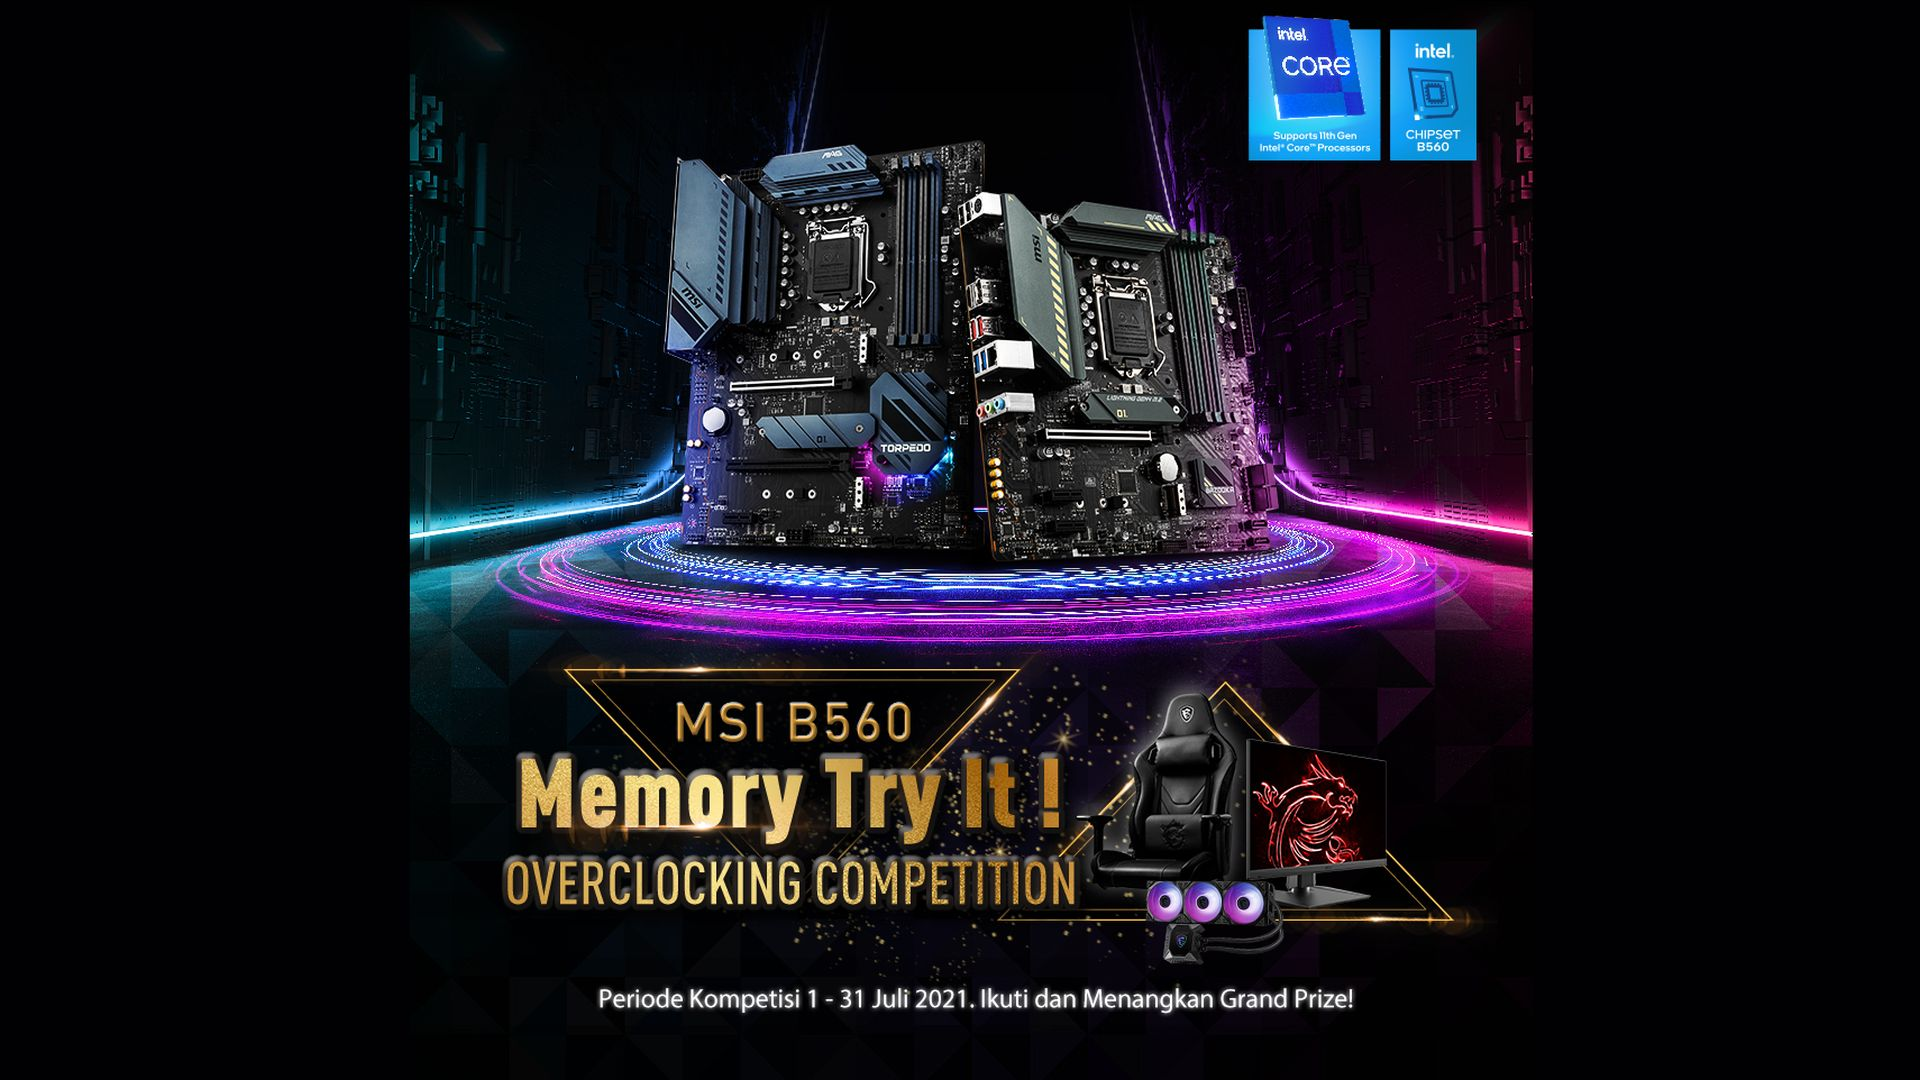 MSI B560 Competition Frequency2